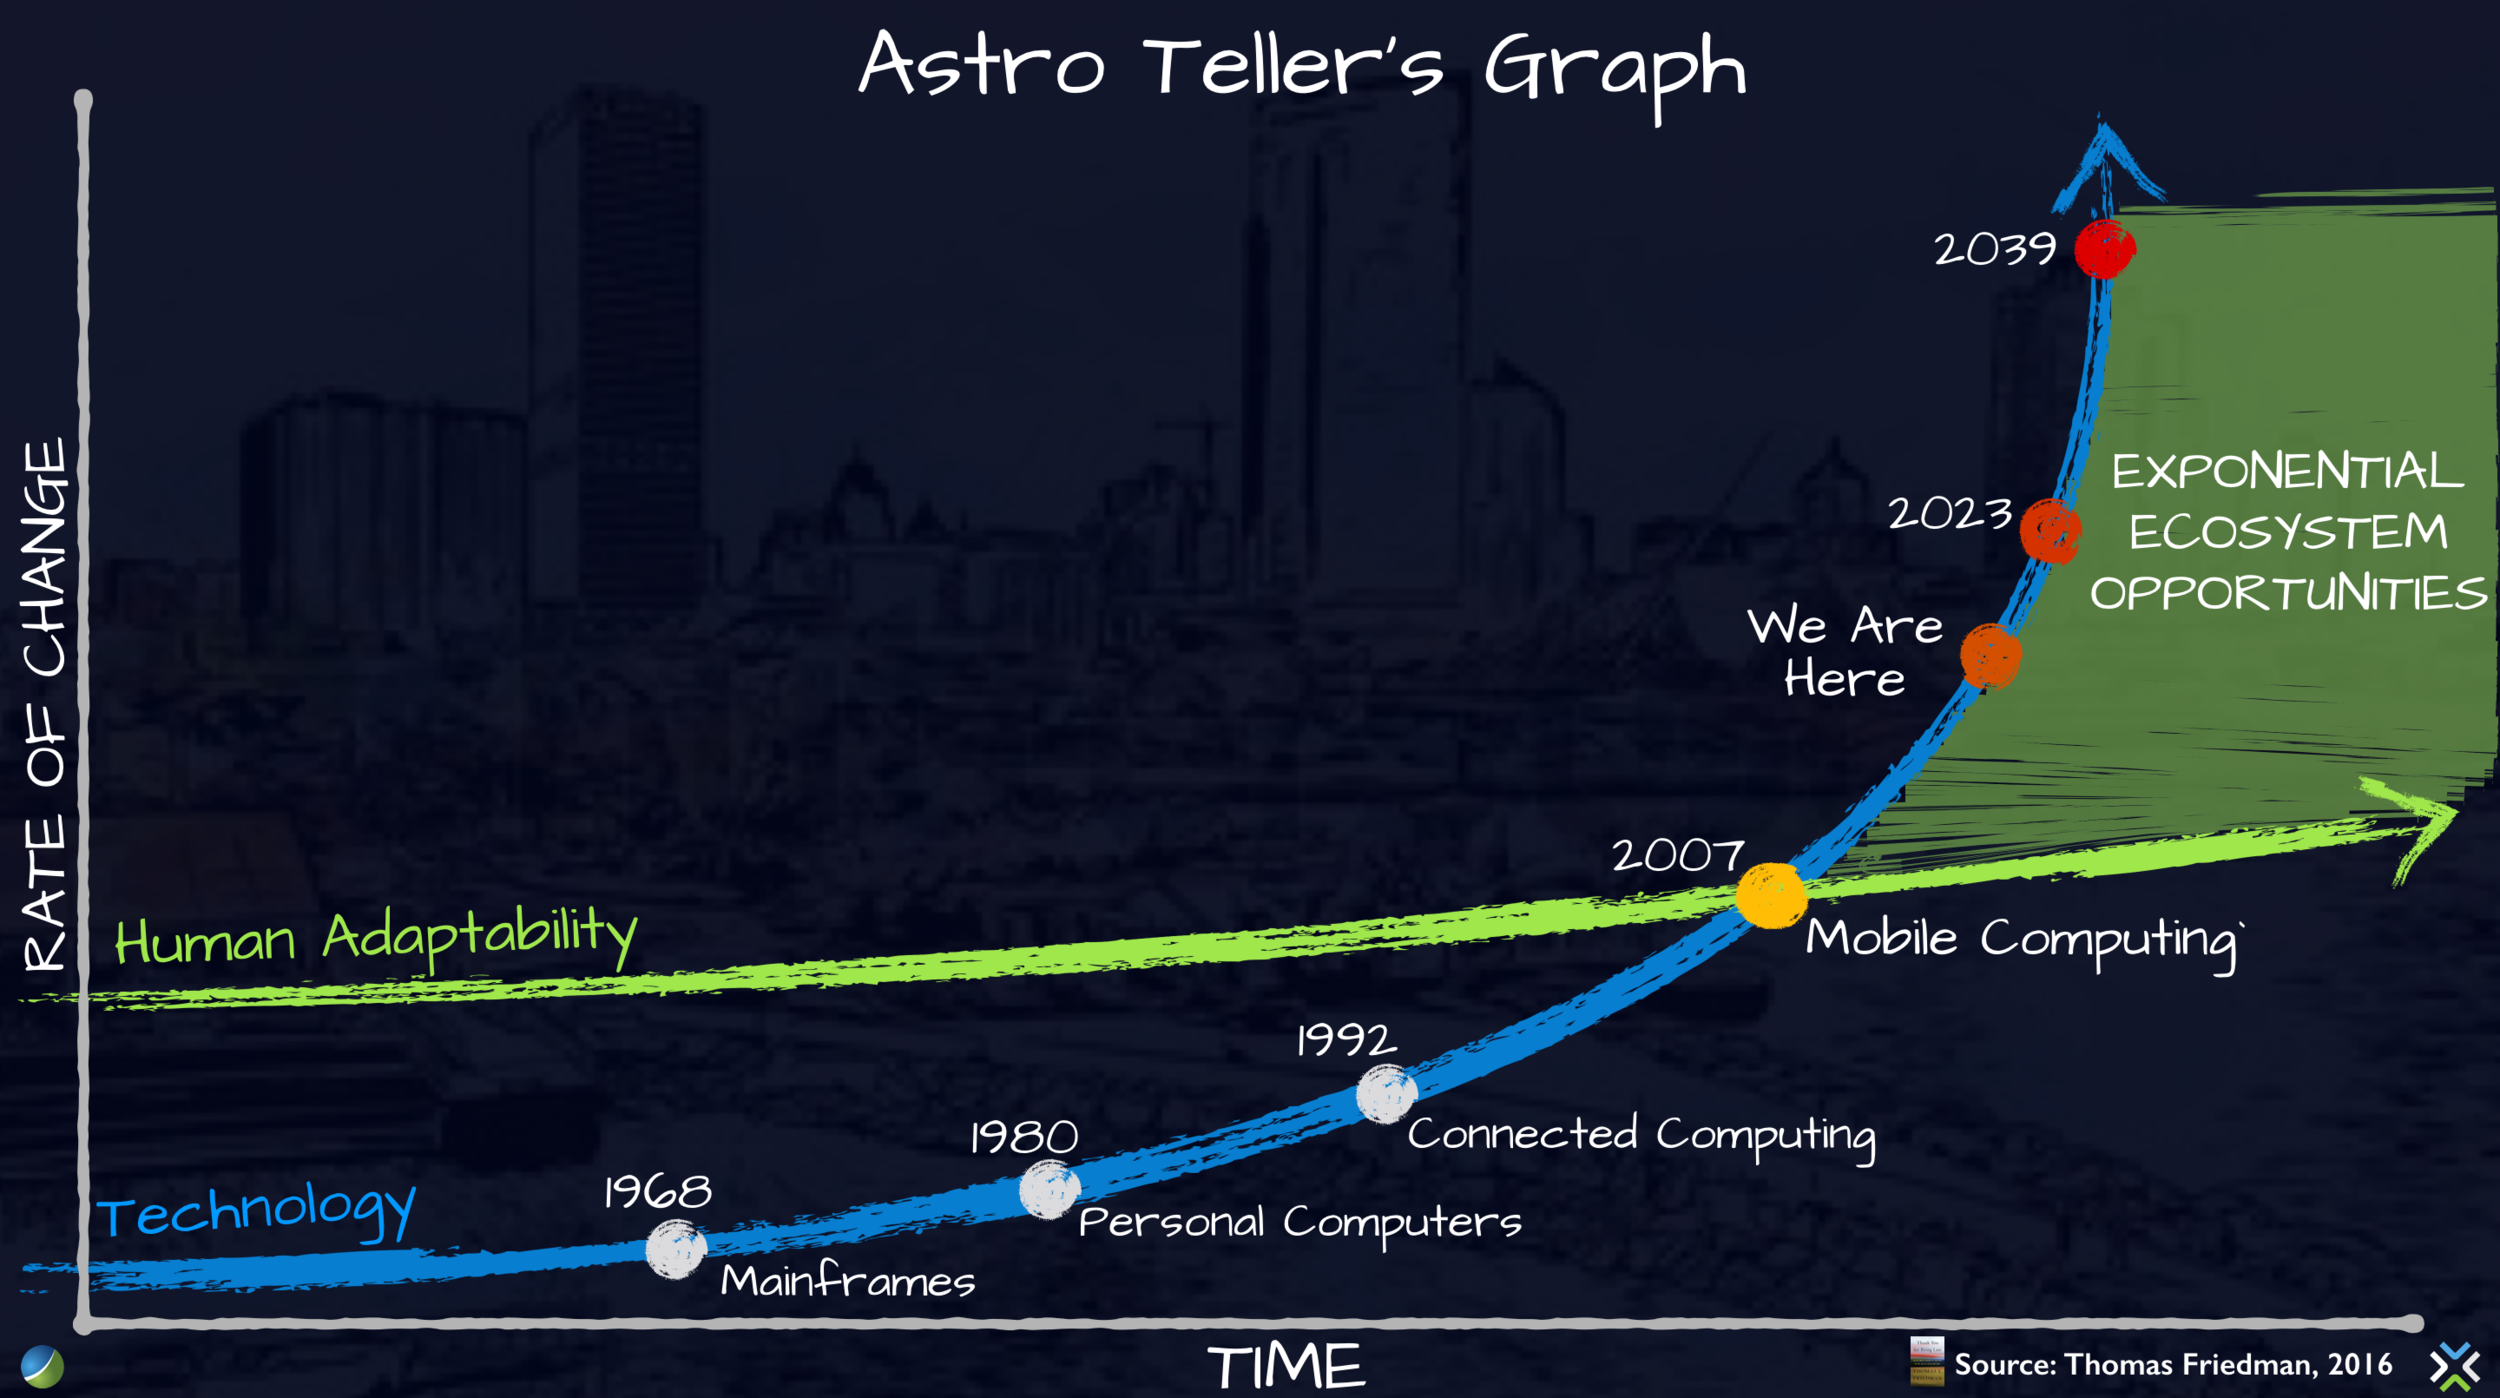 Astro Teller's Curve.png